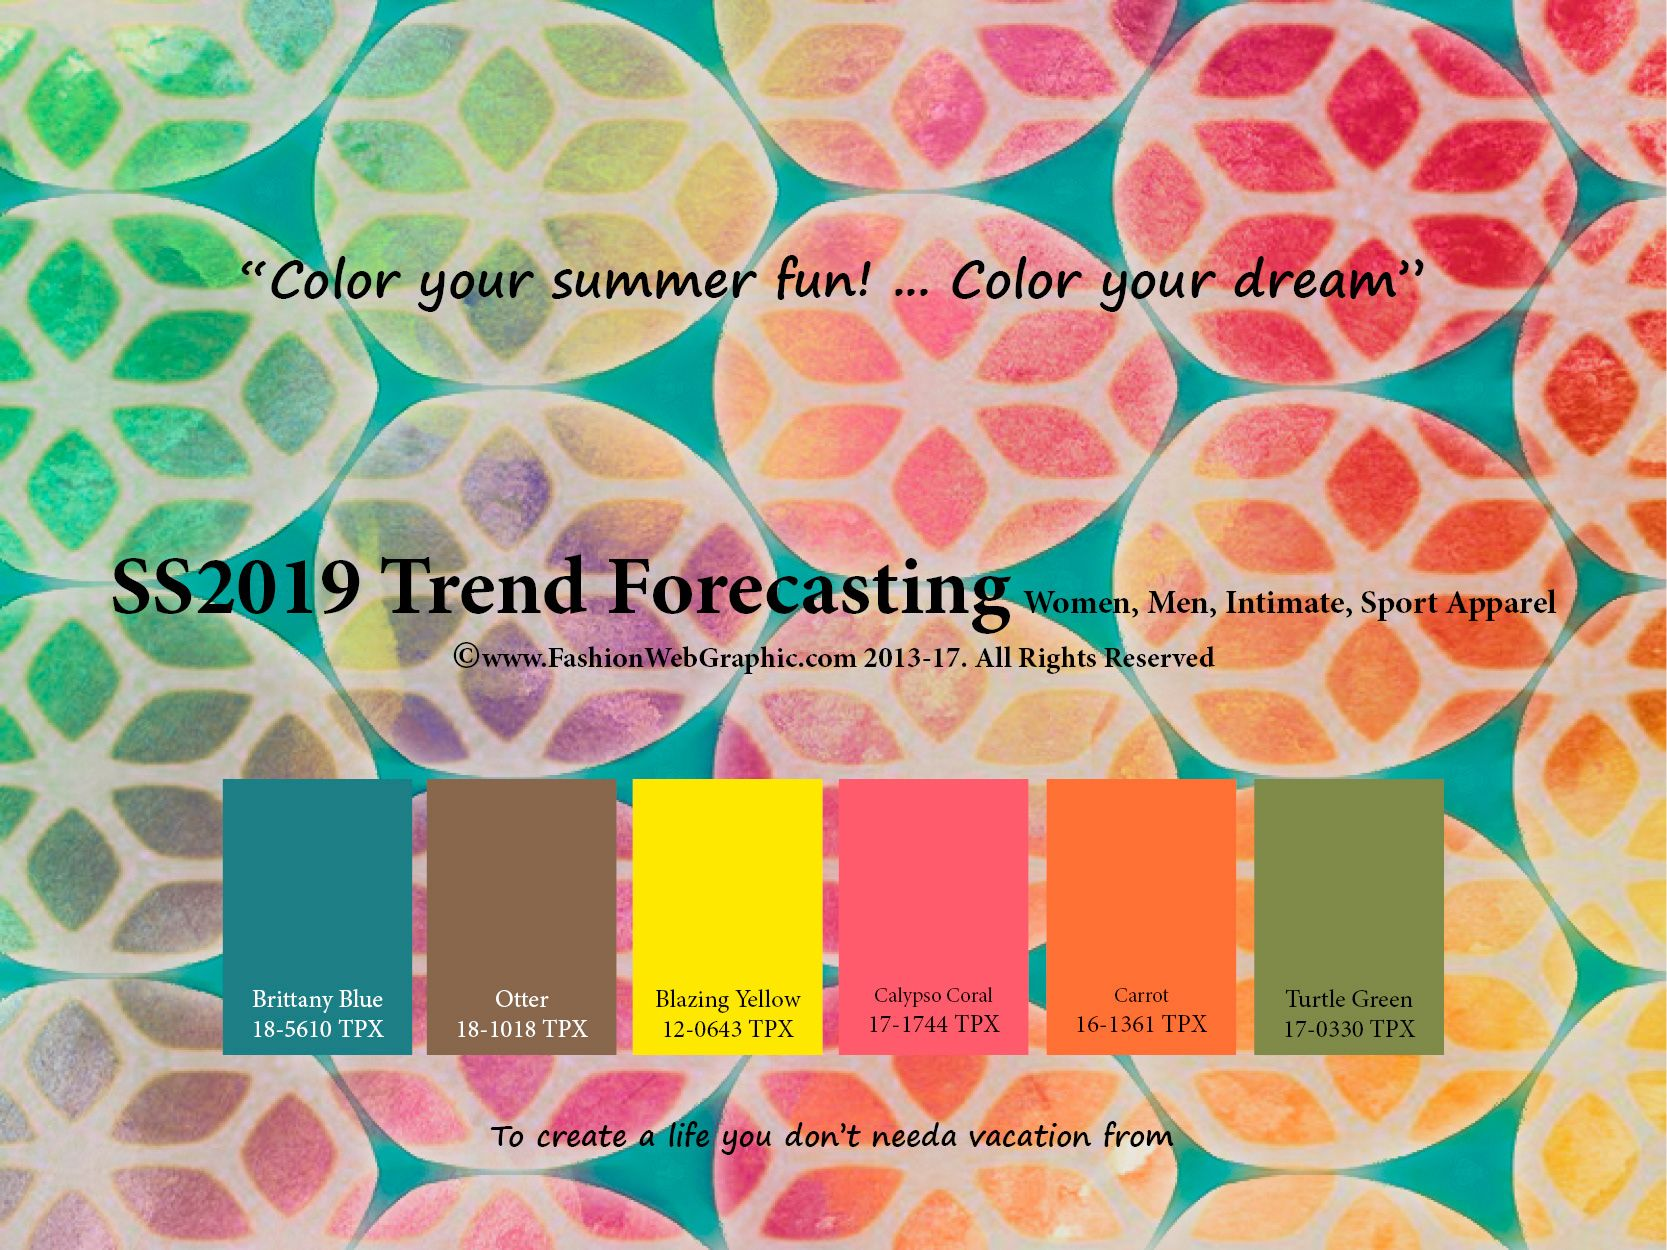 Spring Summer 2019 trend forecasting is A TREND/COLOR ...